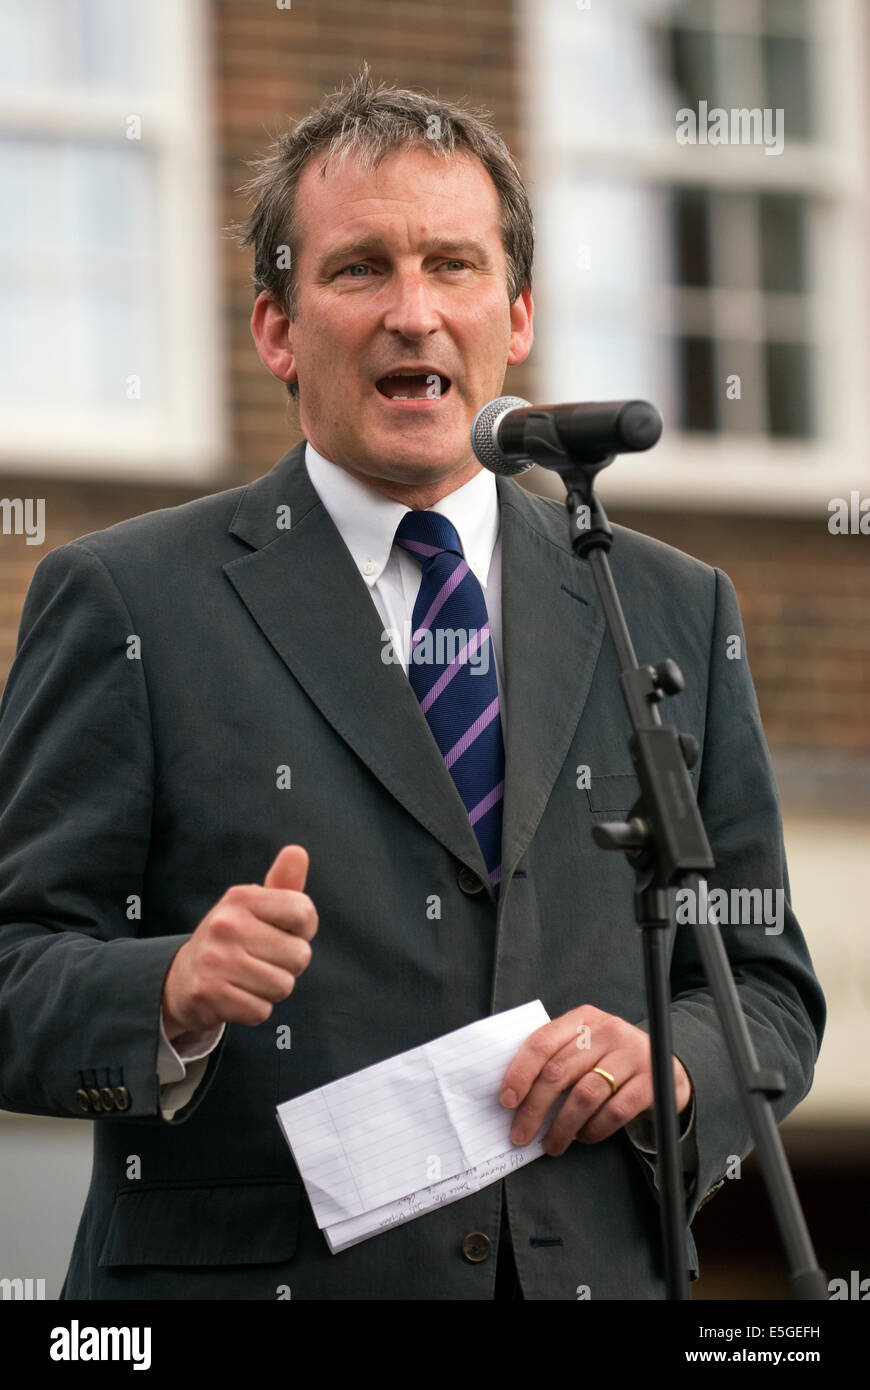 East Hampshire MP Damian Hinds delivers the closing speech following theatrical performances celebrating the centenary - Stock Image